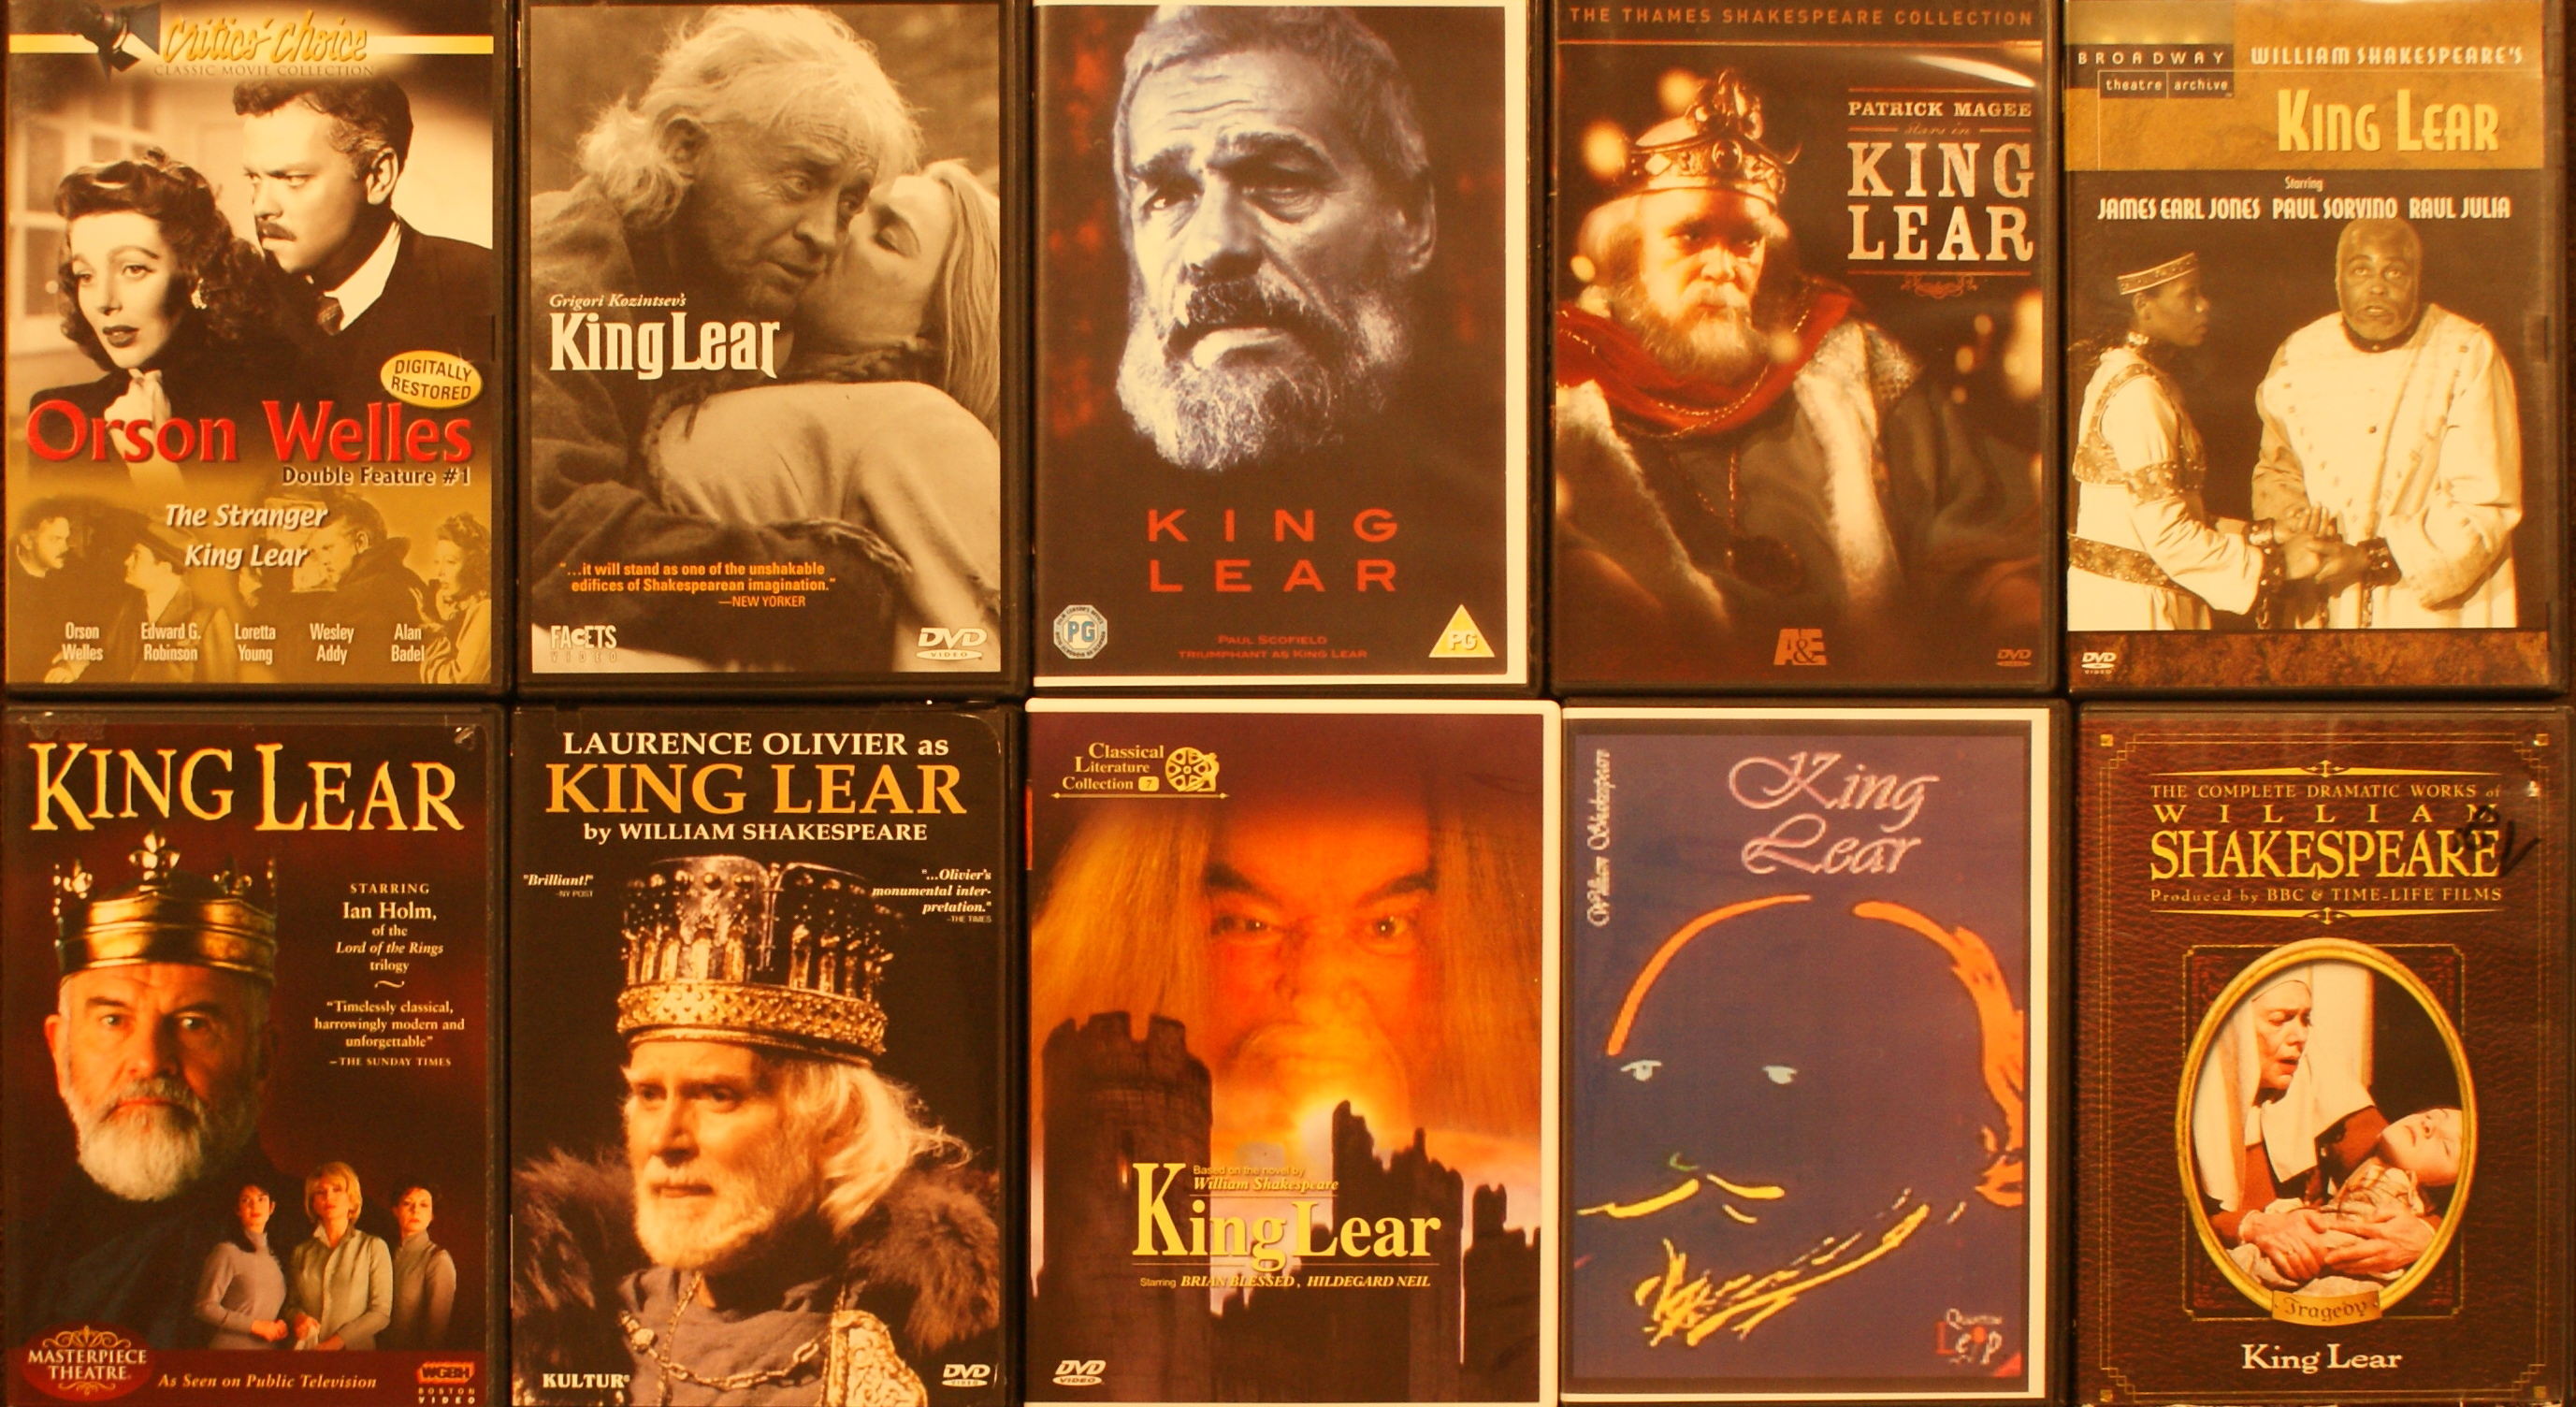 a literary analysis of parallel strokes in king lear by william shakespeare Explore the different themes within william shakespeare's tragic play, king lear themes are central to understanding king lear as a play and identifying shakes.